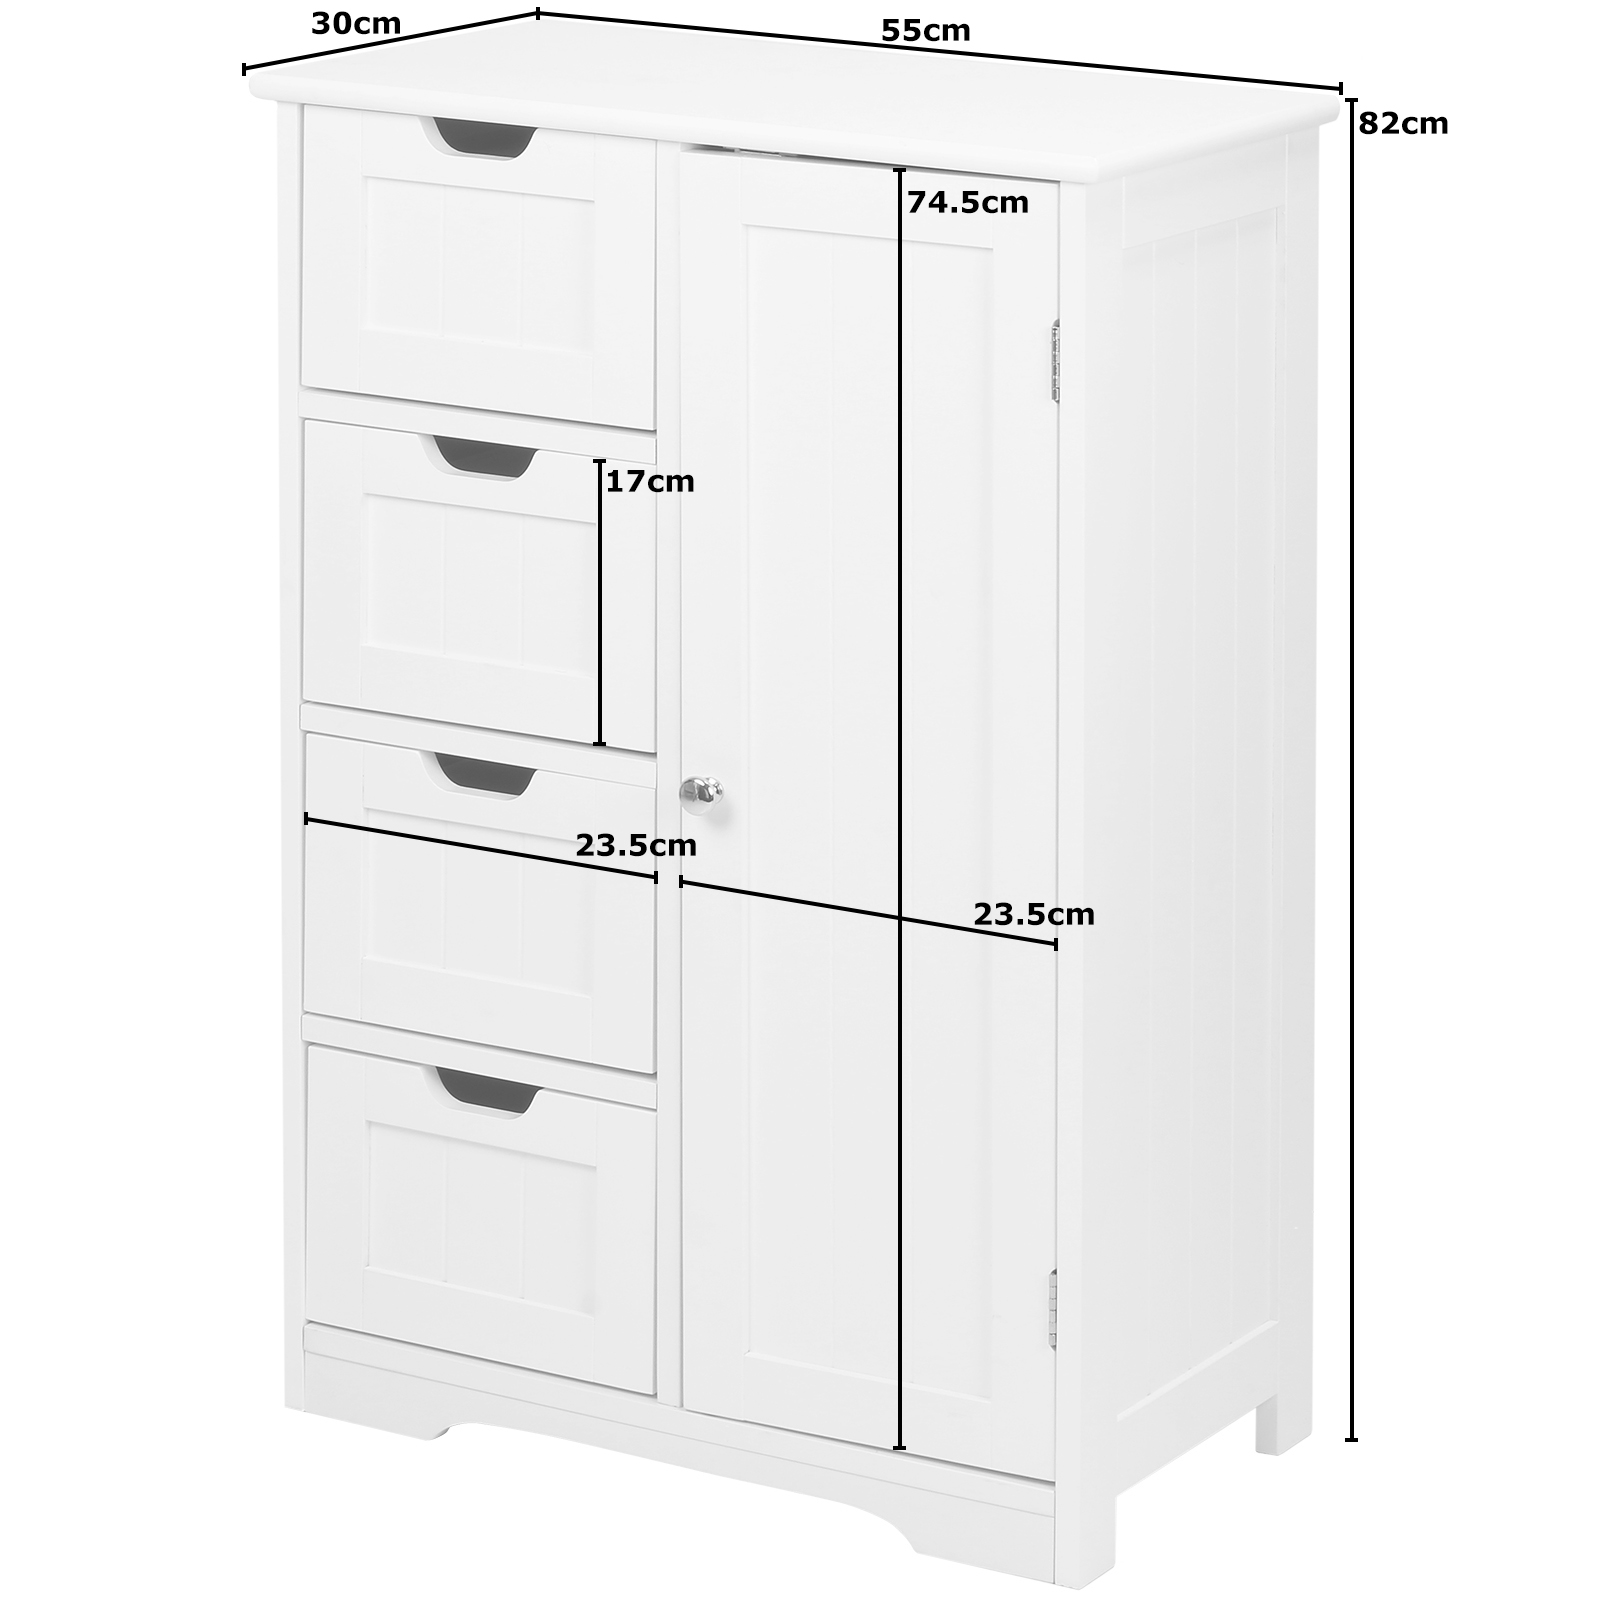 Hartleys white bathroom cupboard storage cabinet drawers - Bedroom storage cabinets with drawers ...